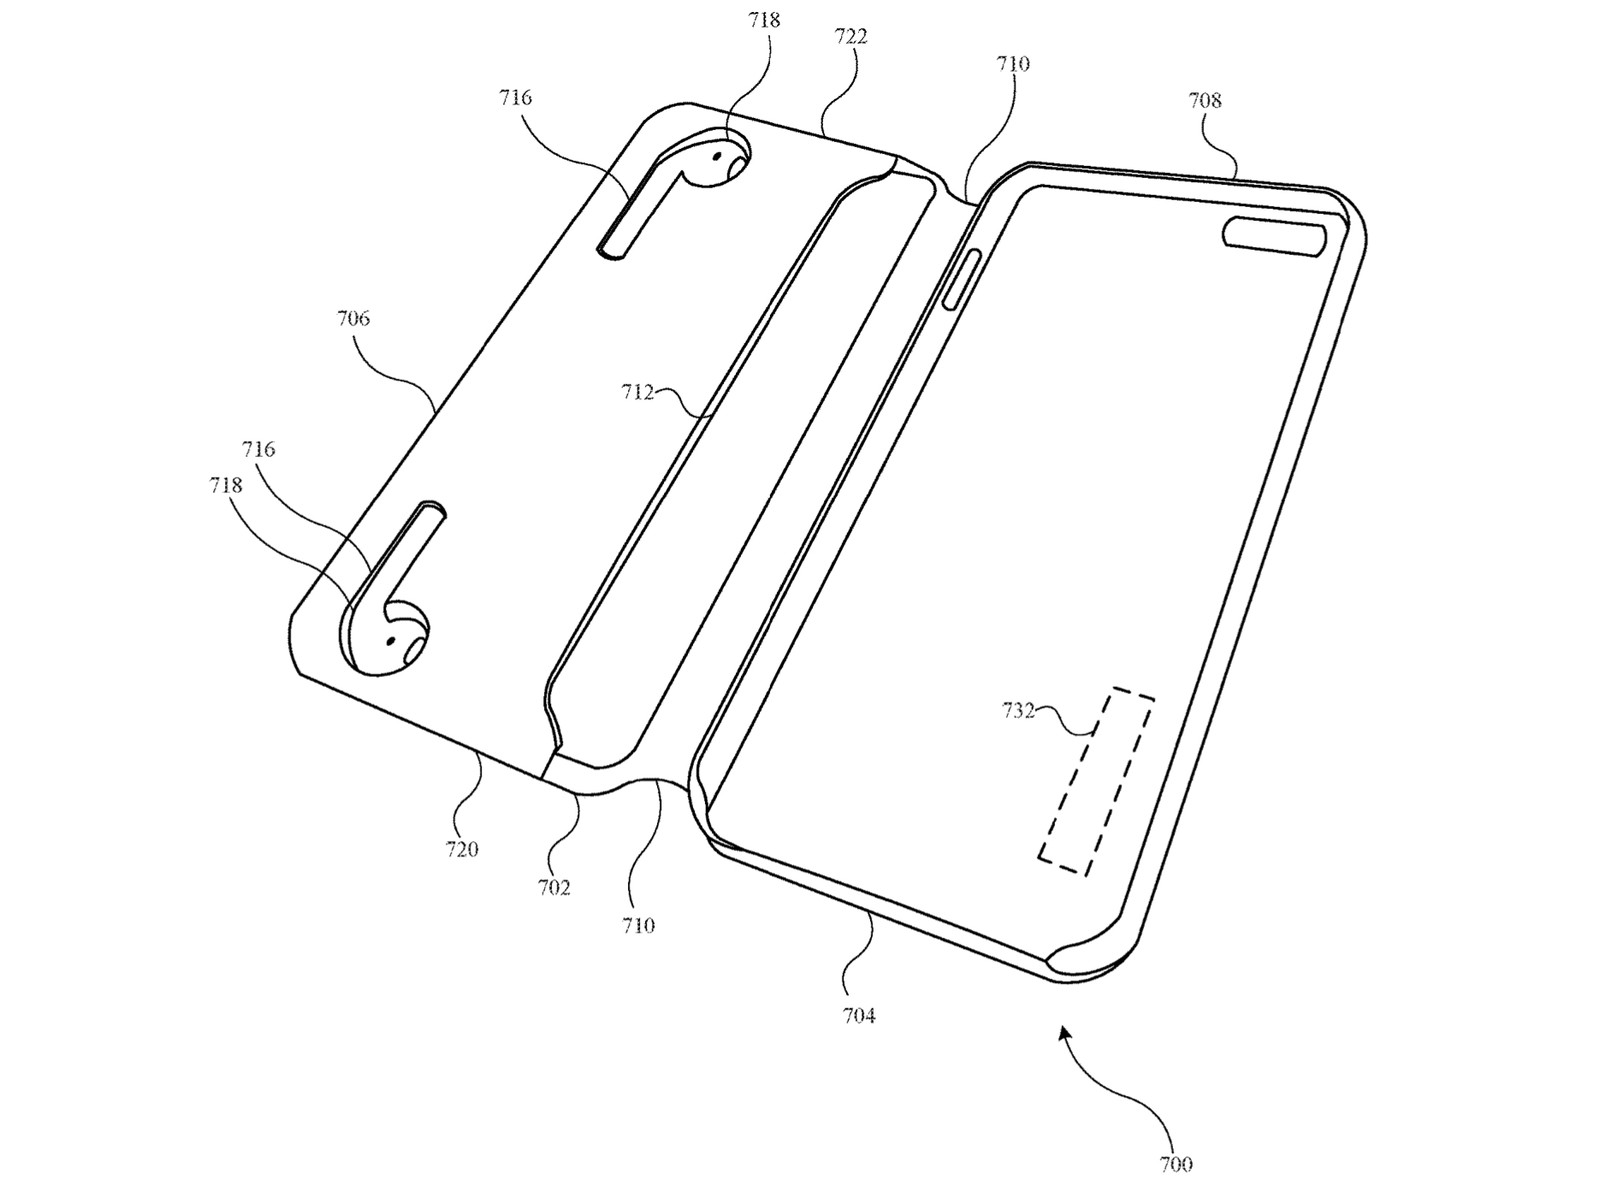 Patent Reveals Apple Working On iPhone Cases That Charge AirPods